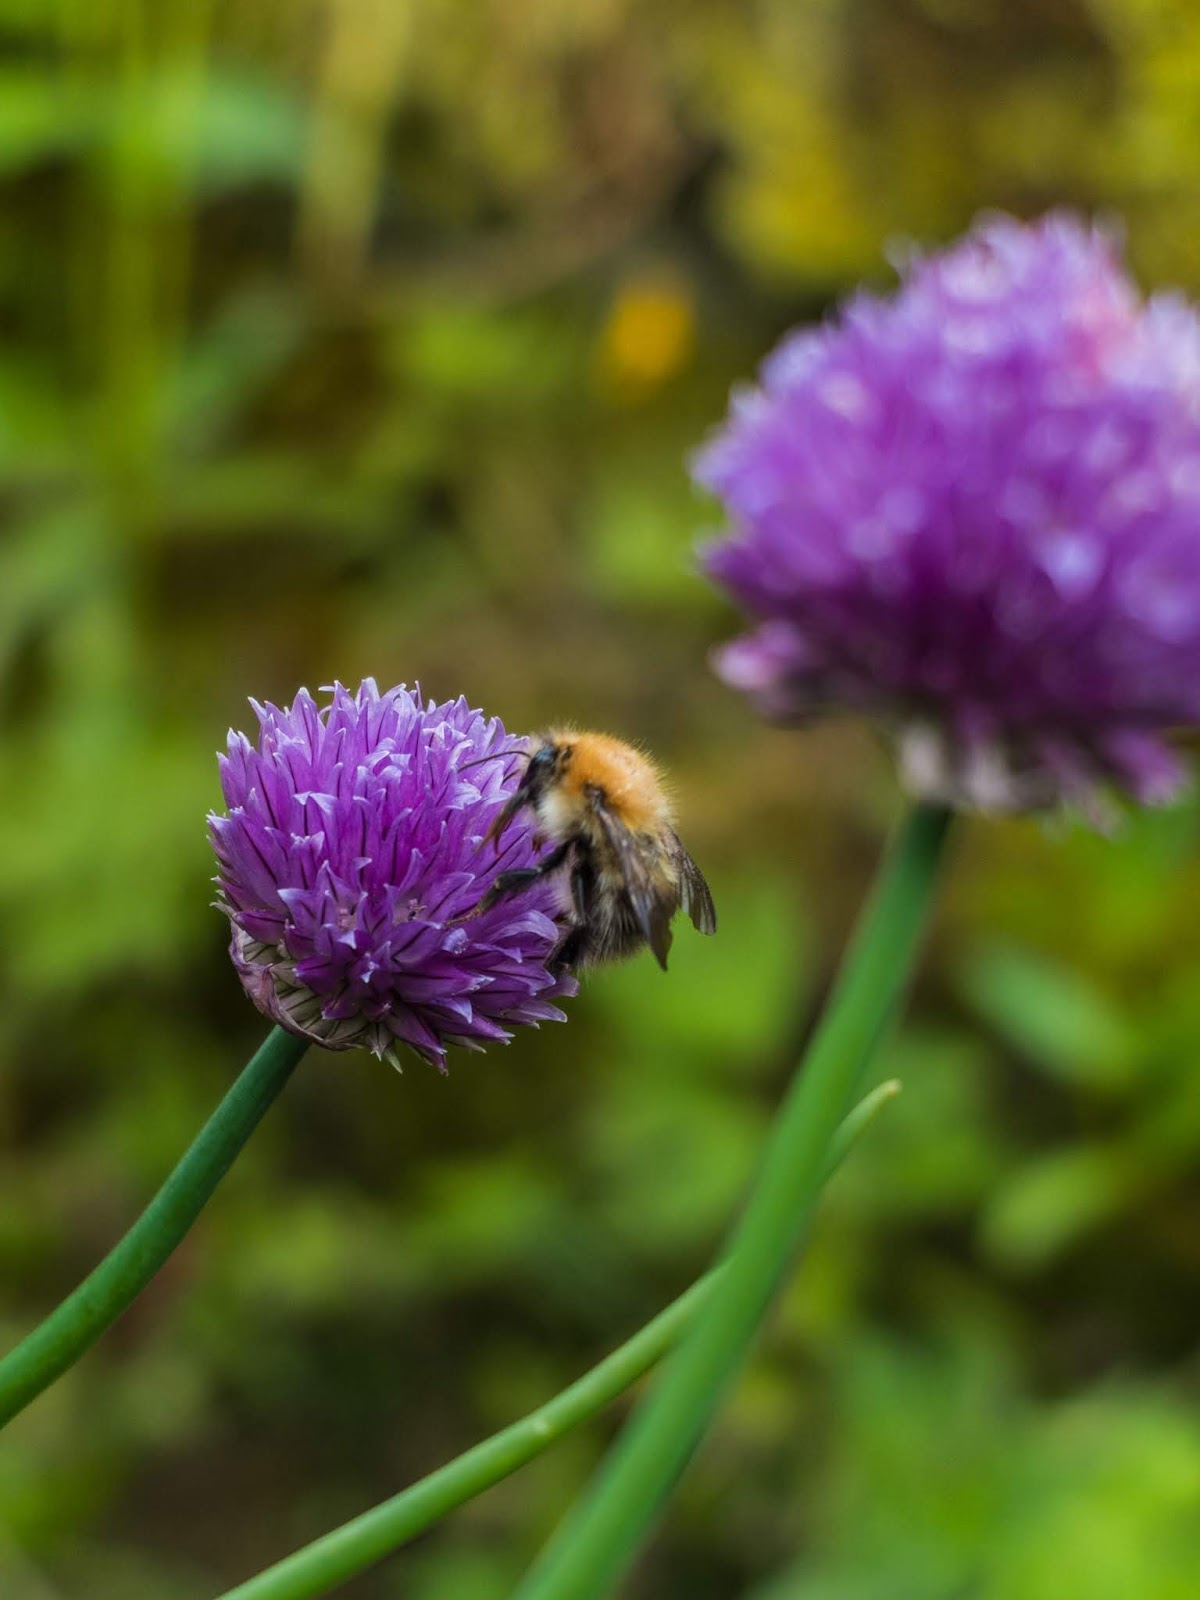 A bumble bee sitting on a small, purple chive flower.